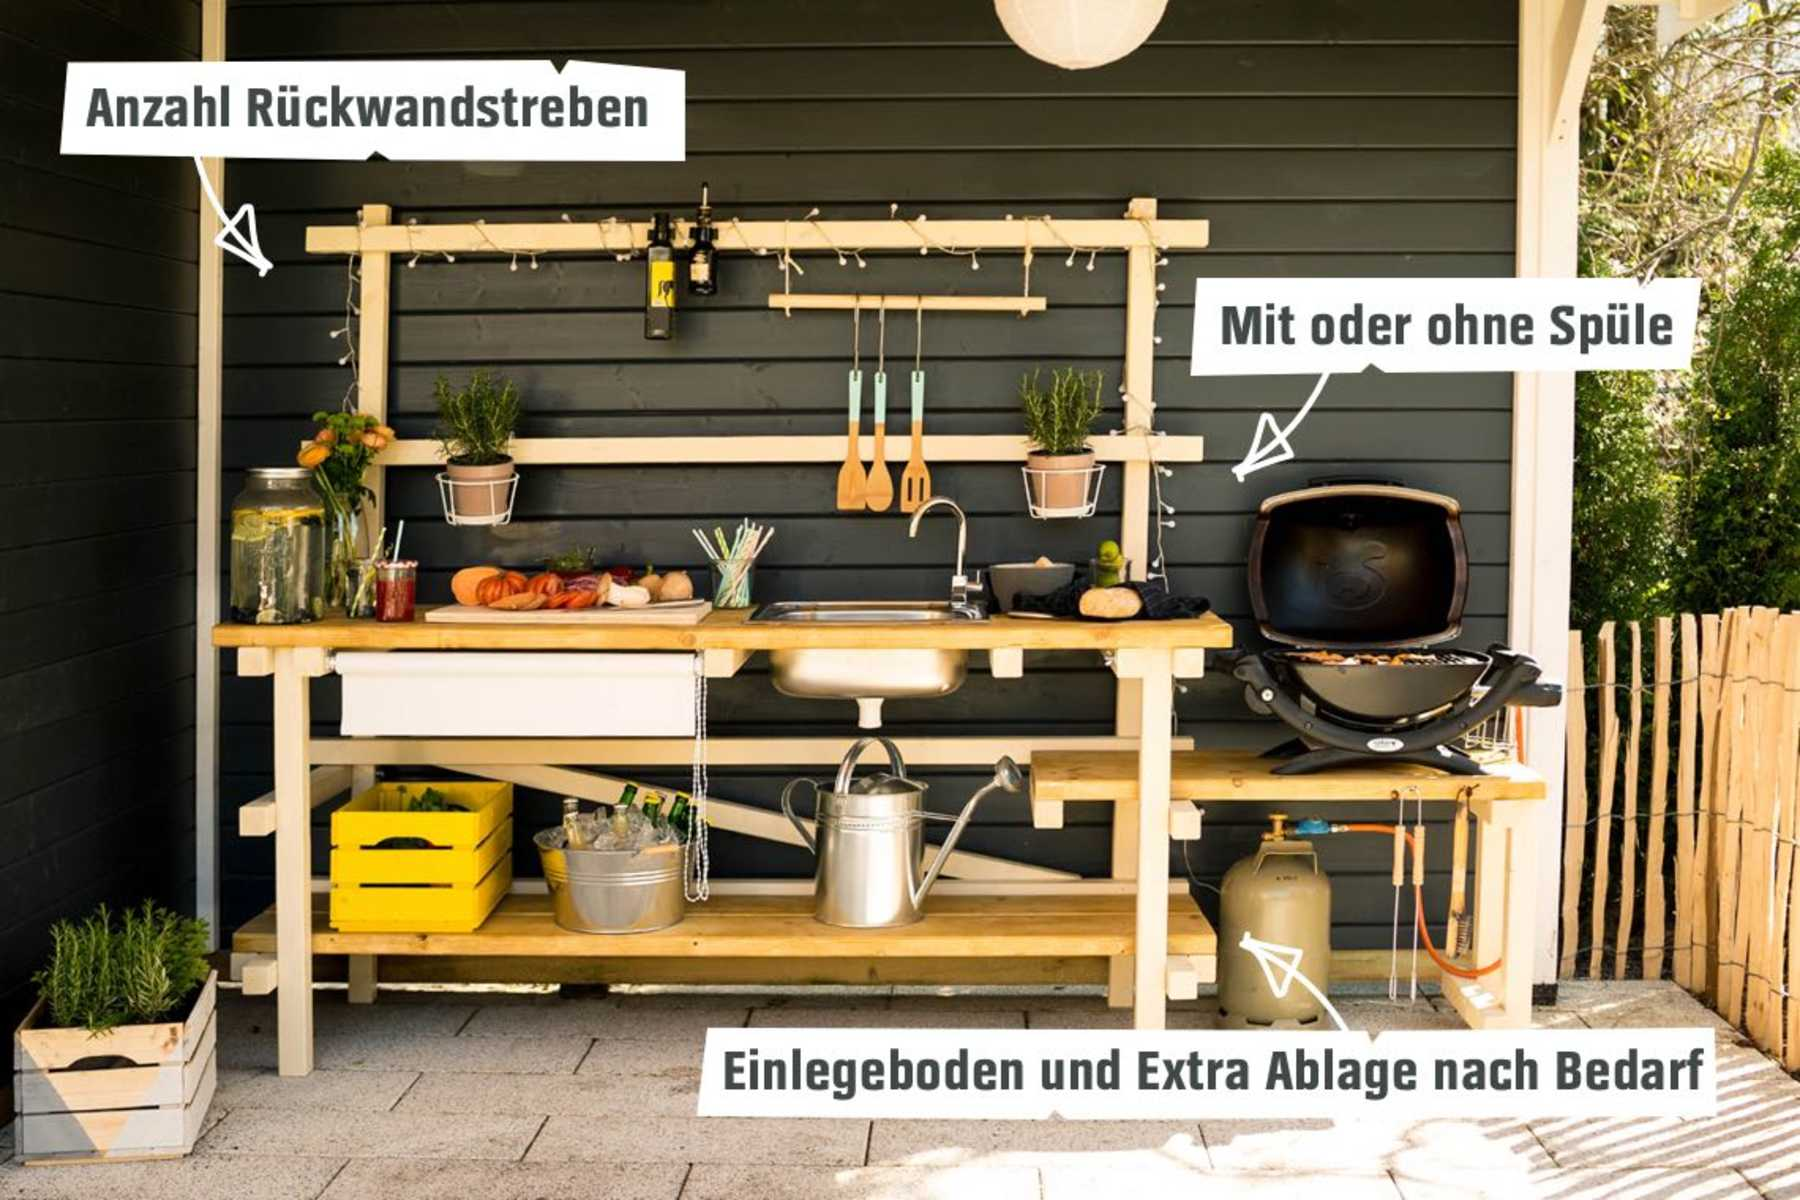 Burnout Outdoor Küche Outdoor Grill Kuche Inspiration | Milt's Dekor